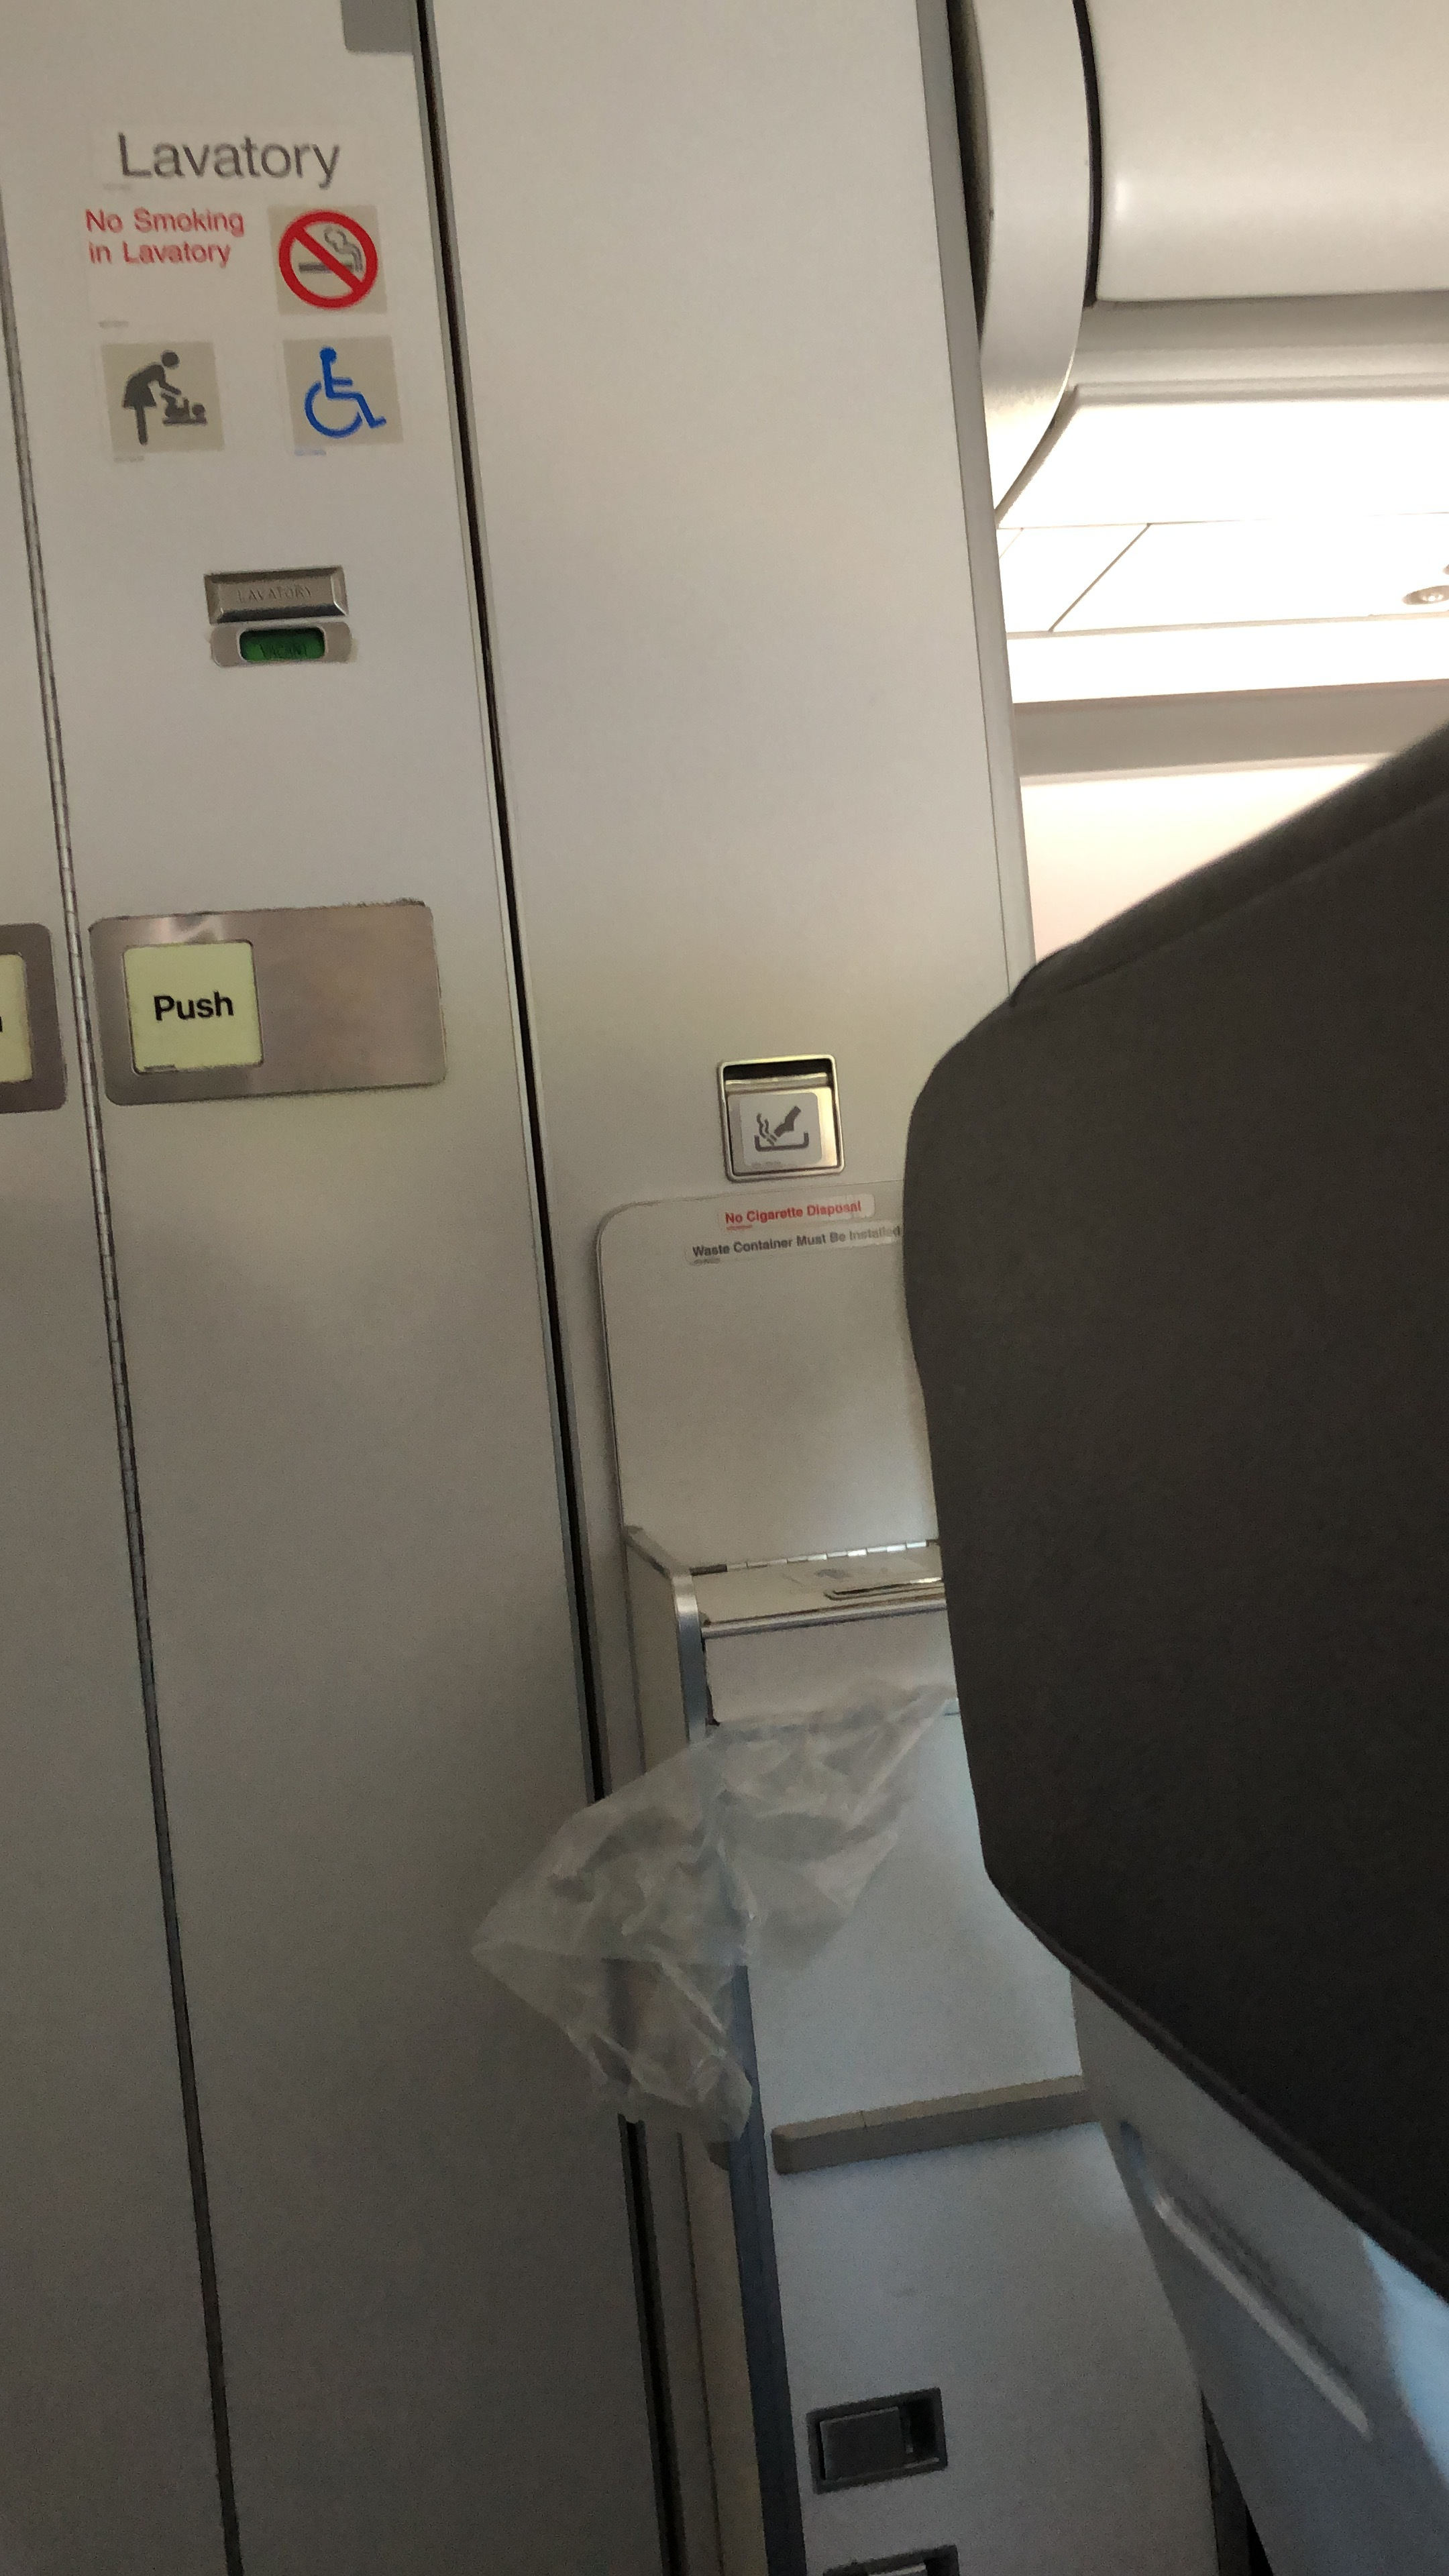 lavatory in my row on American Airlines August 26, 2019